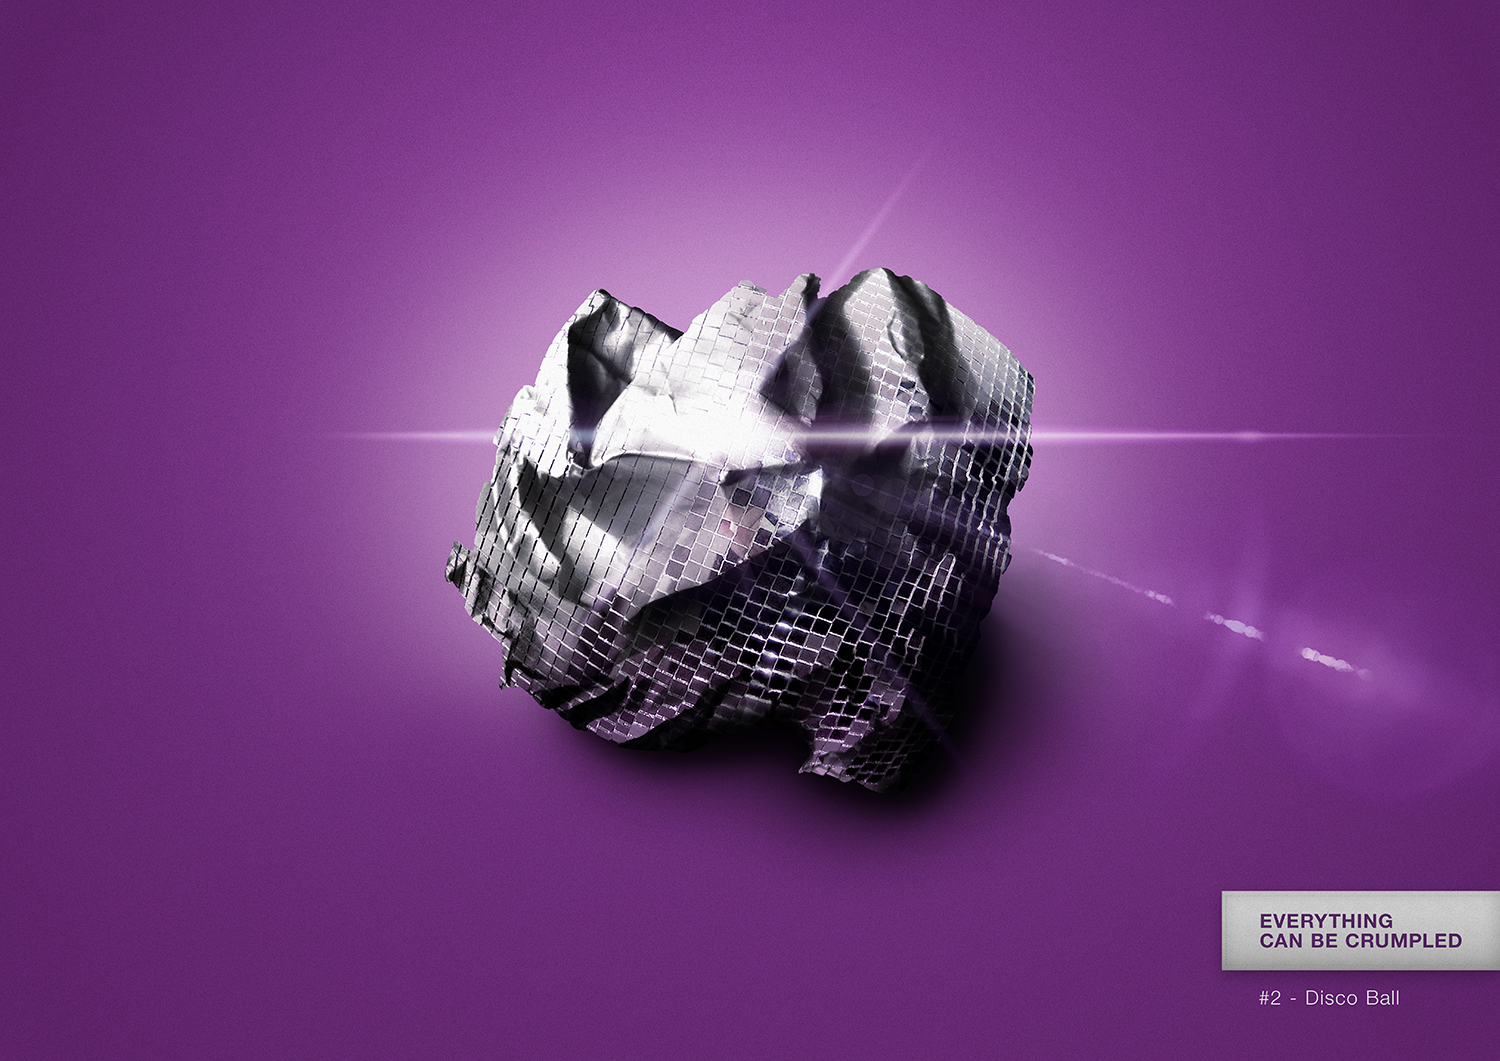 Everything can be crumpled - #2 Disco Ball